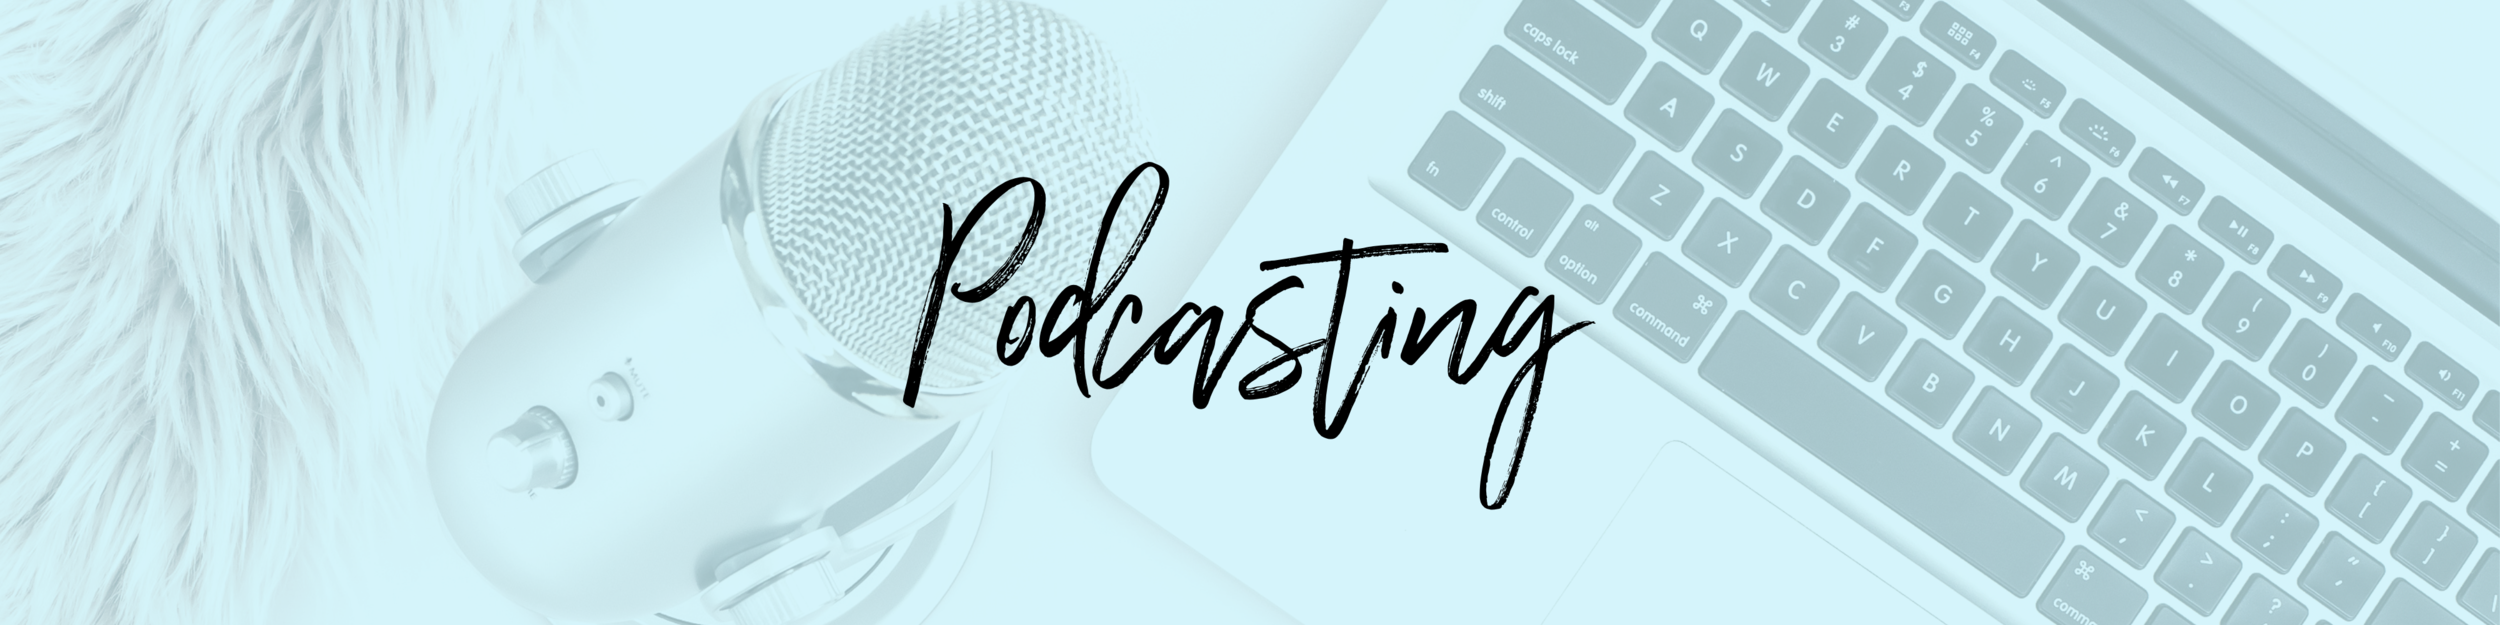 LMC Podcasting Services